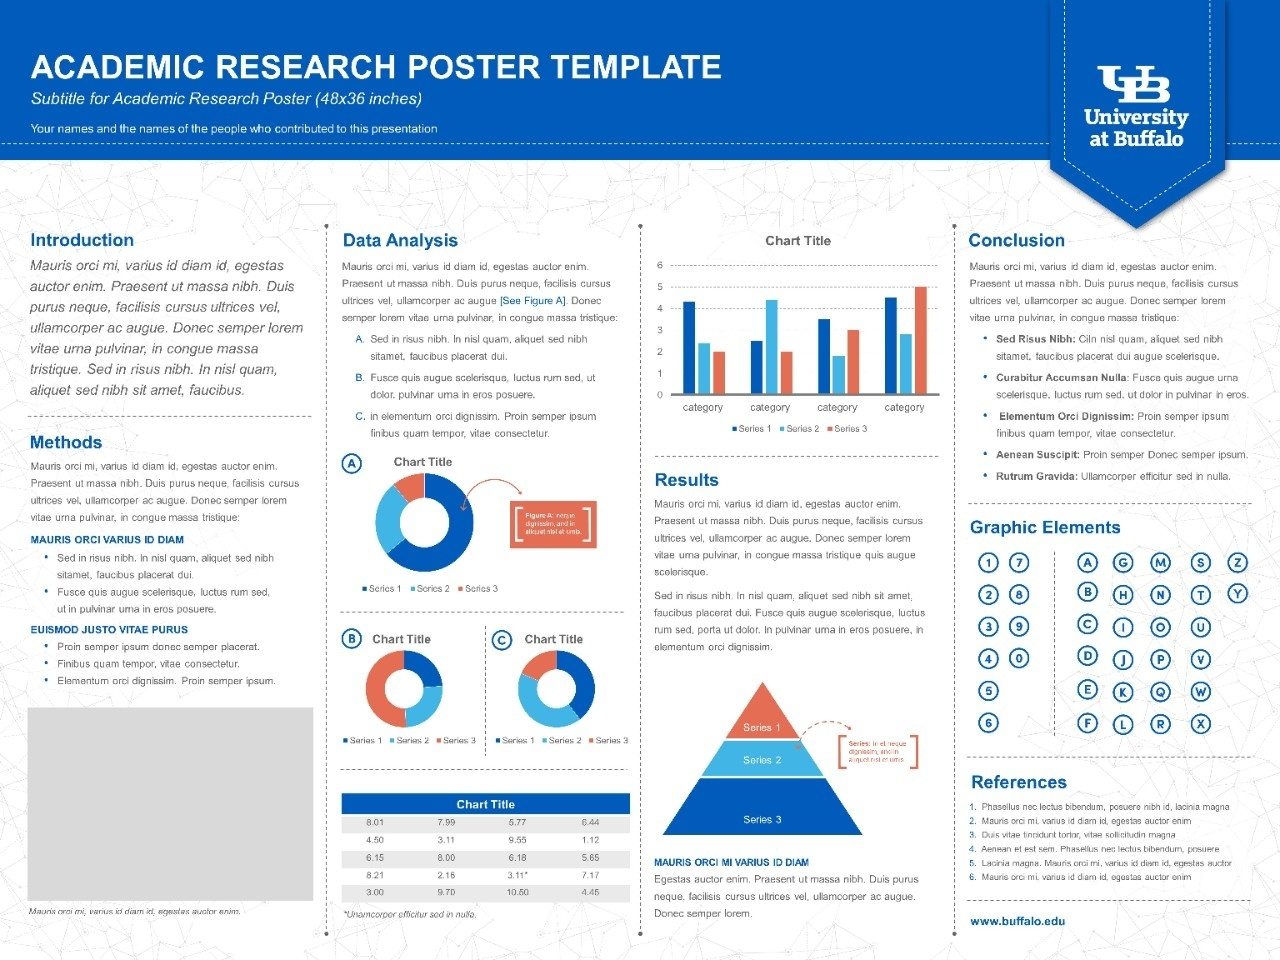 Scientific Poster Template Powerpoint - Tunu.redmini.co Intended For Powerpoint Academic Poster Template